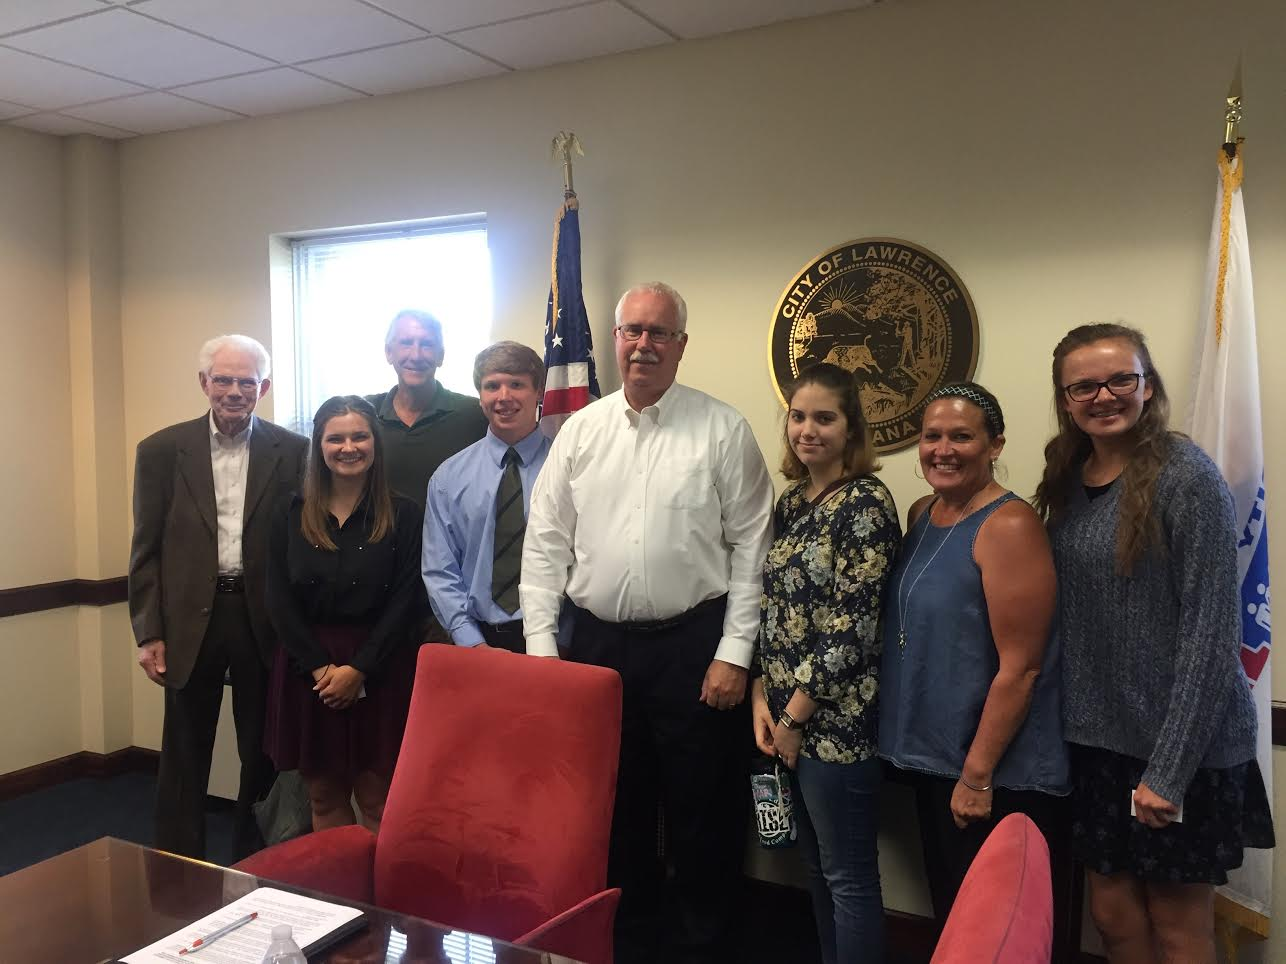 As part of our intergenerational approach, this photo was taken on June 5 in a meeting we had with Mayor Collier, center, white shirt. Mayor Collier was busy working on the Resolution and needed some input.